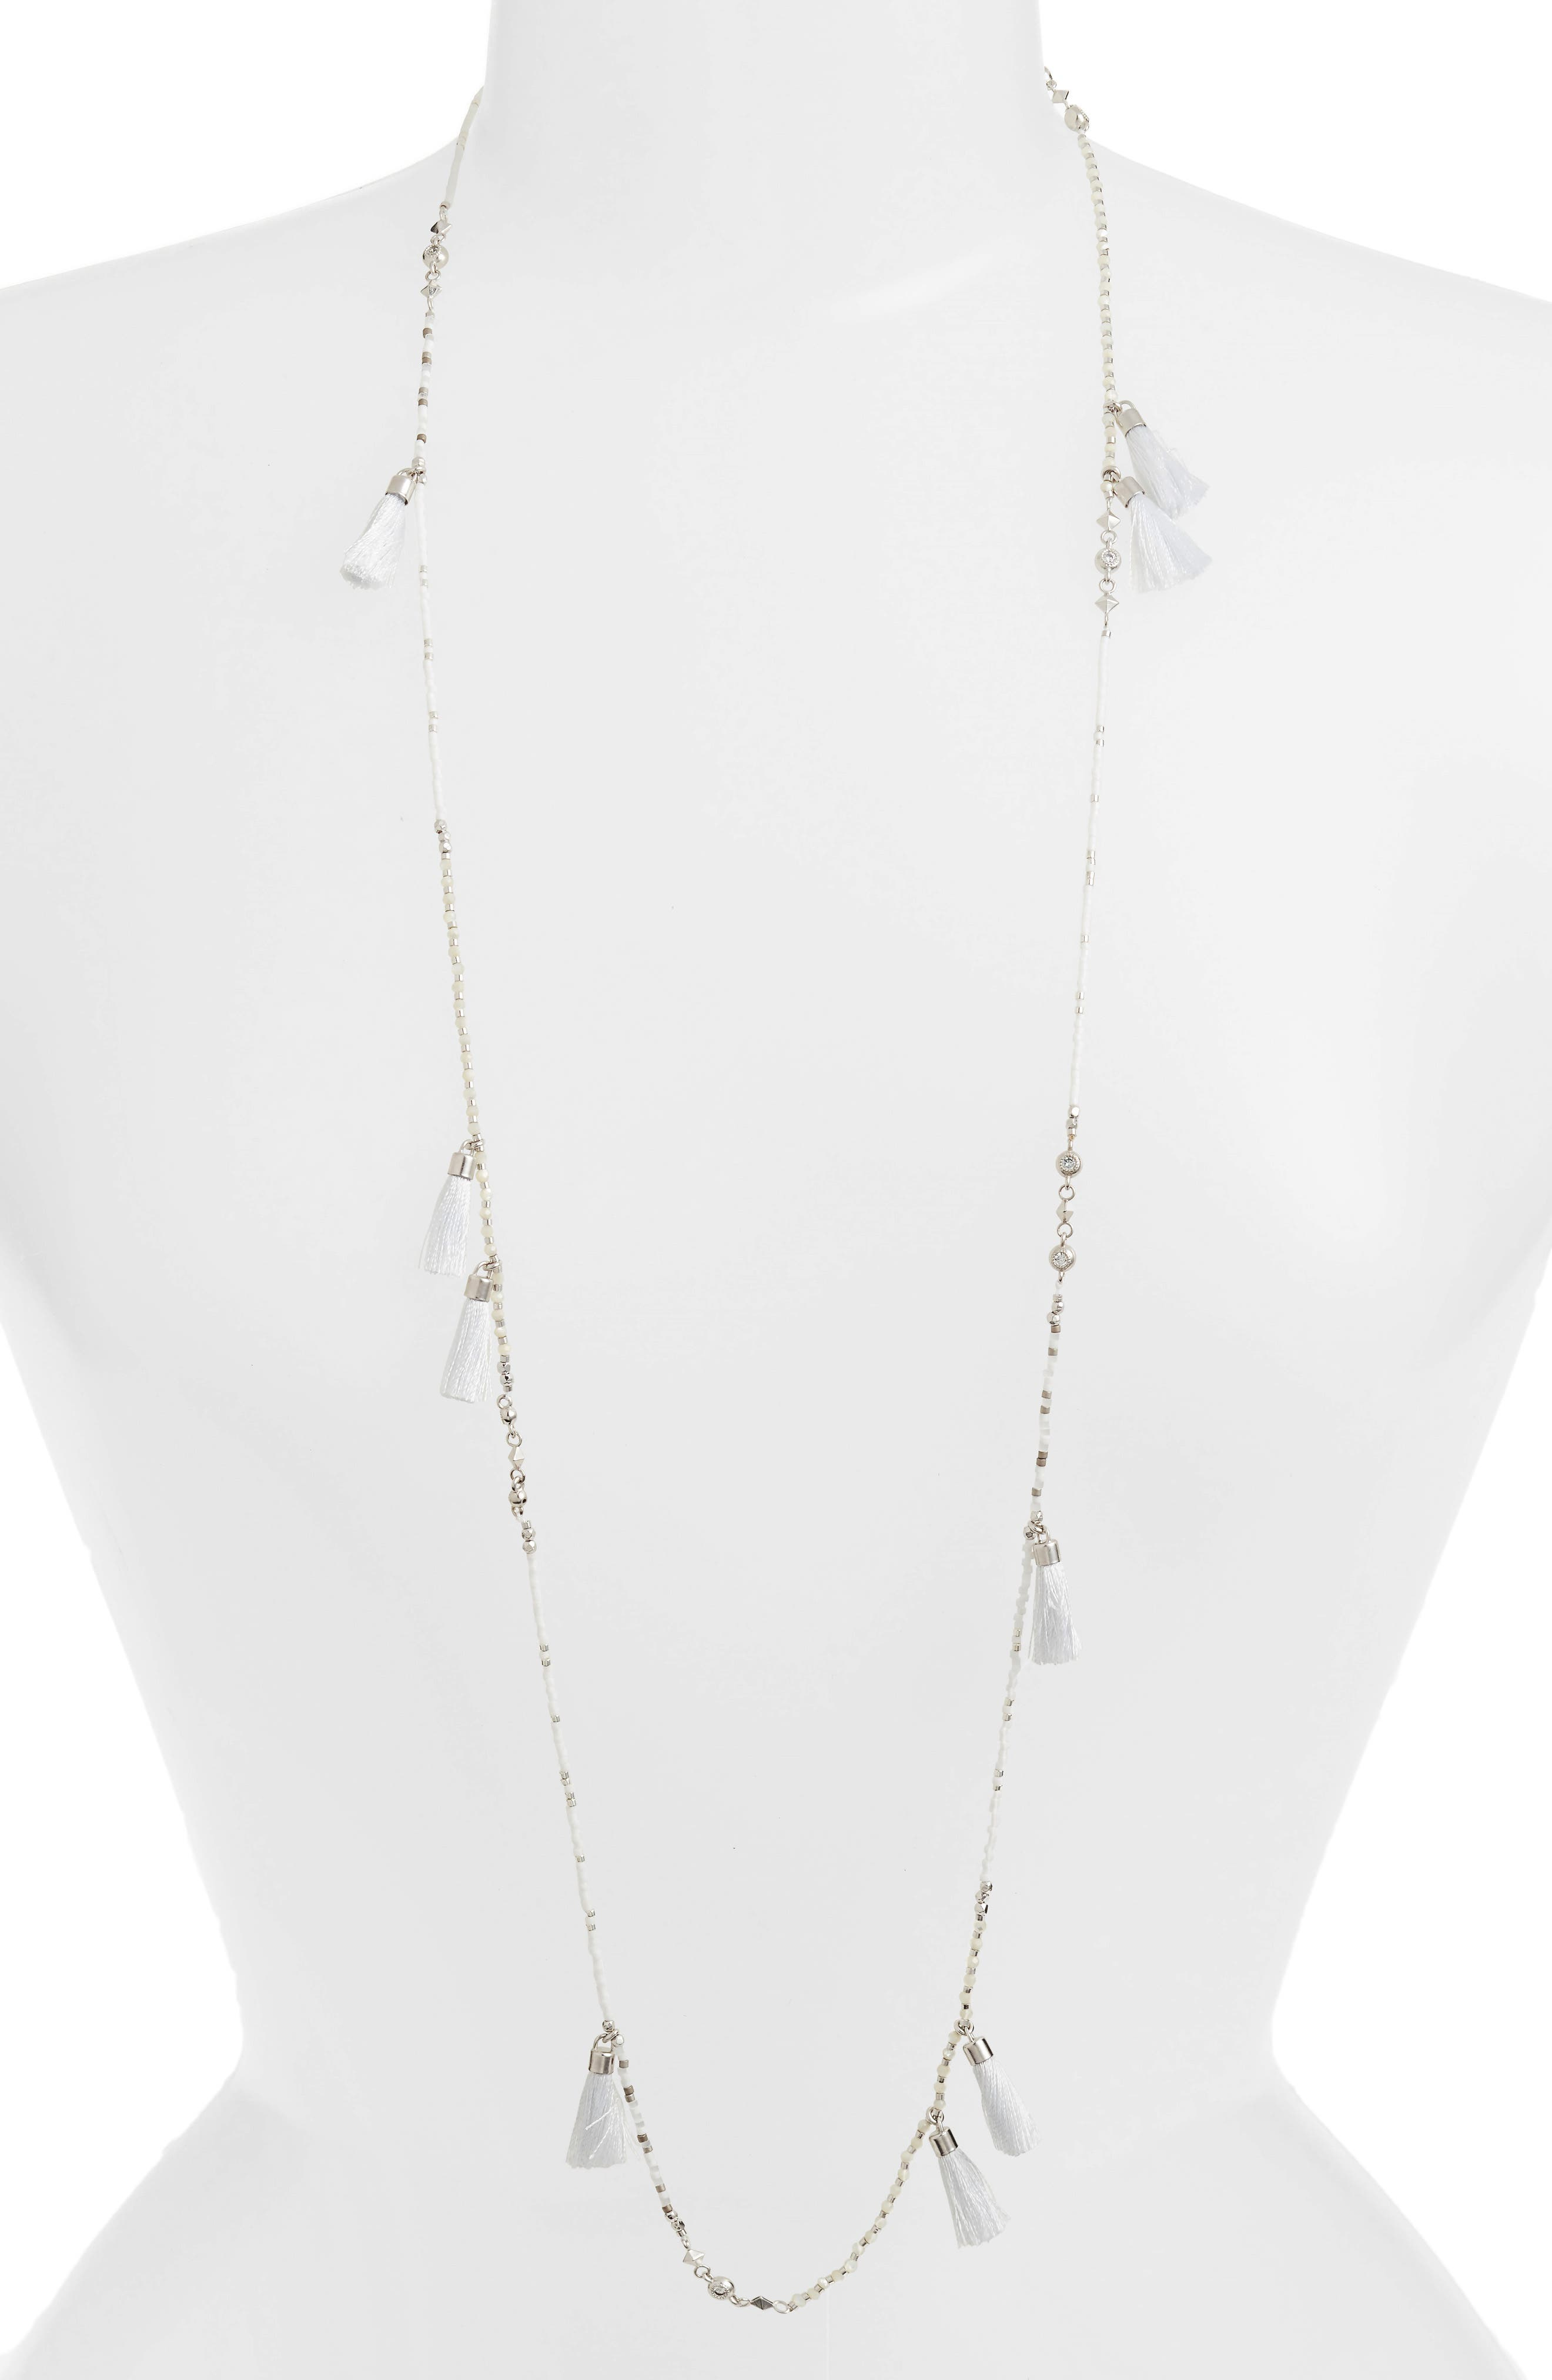 Augusta Tassel Necklace,                         Main,                         color, 100